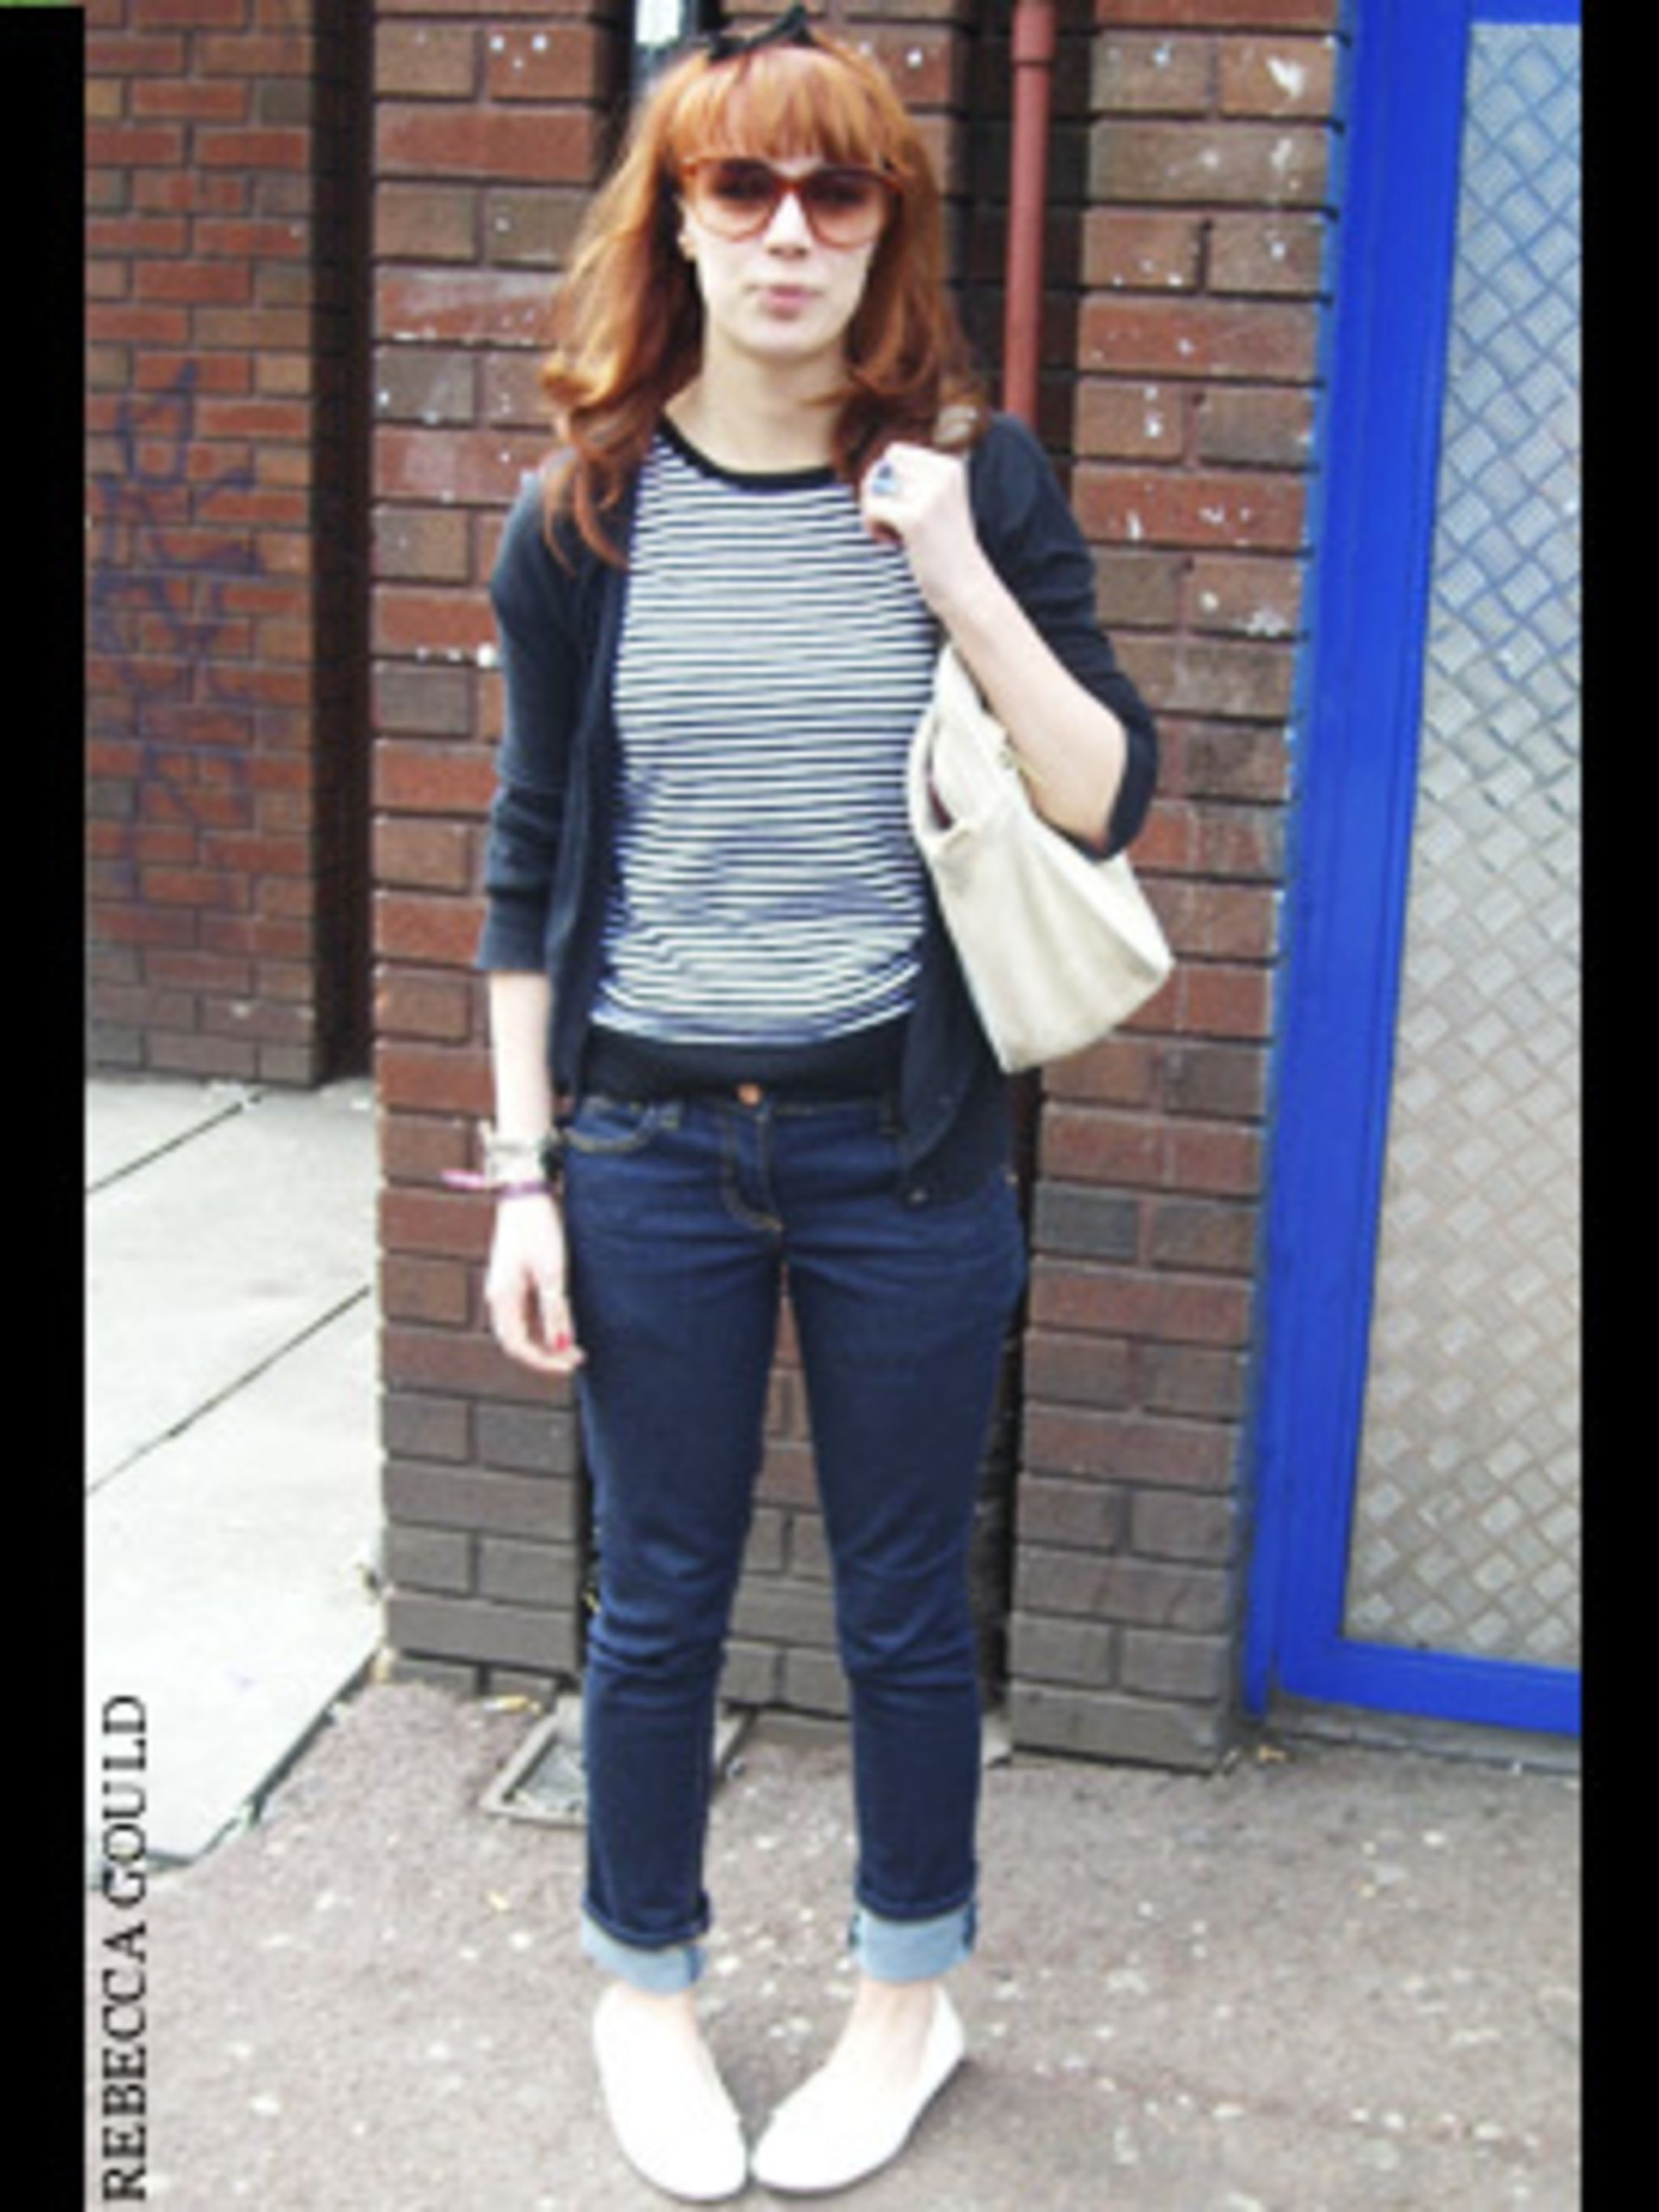 <p>A classic blue and white striped T-shirt is the easiest way to inject a bit of sailor chic into your everyday look. Team with your favourite jeans - hems rolled this season of course - a cardigan and retro, white pumps. Rachel has finished her look wit